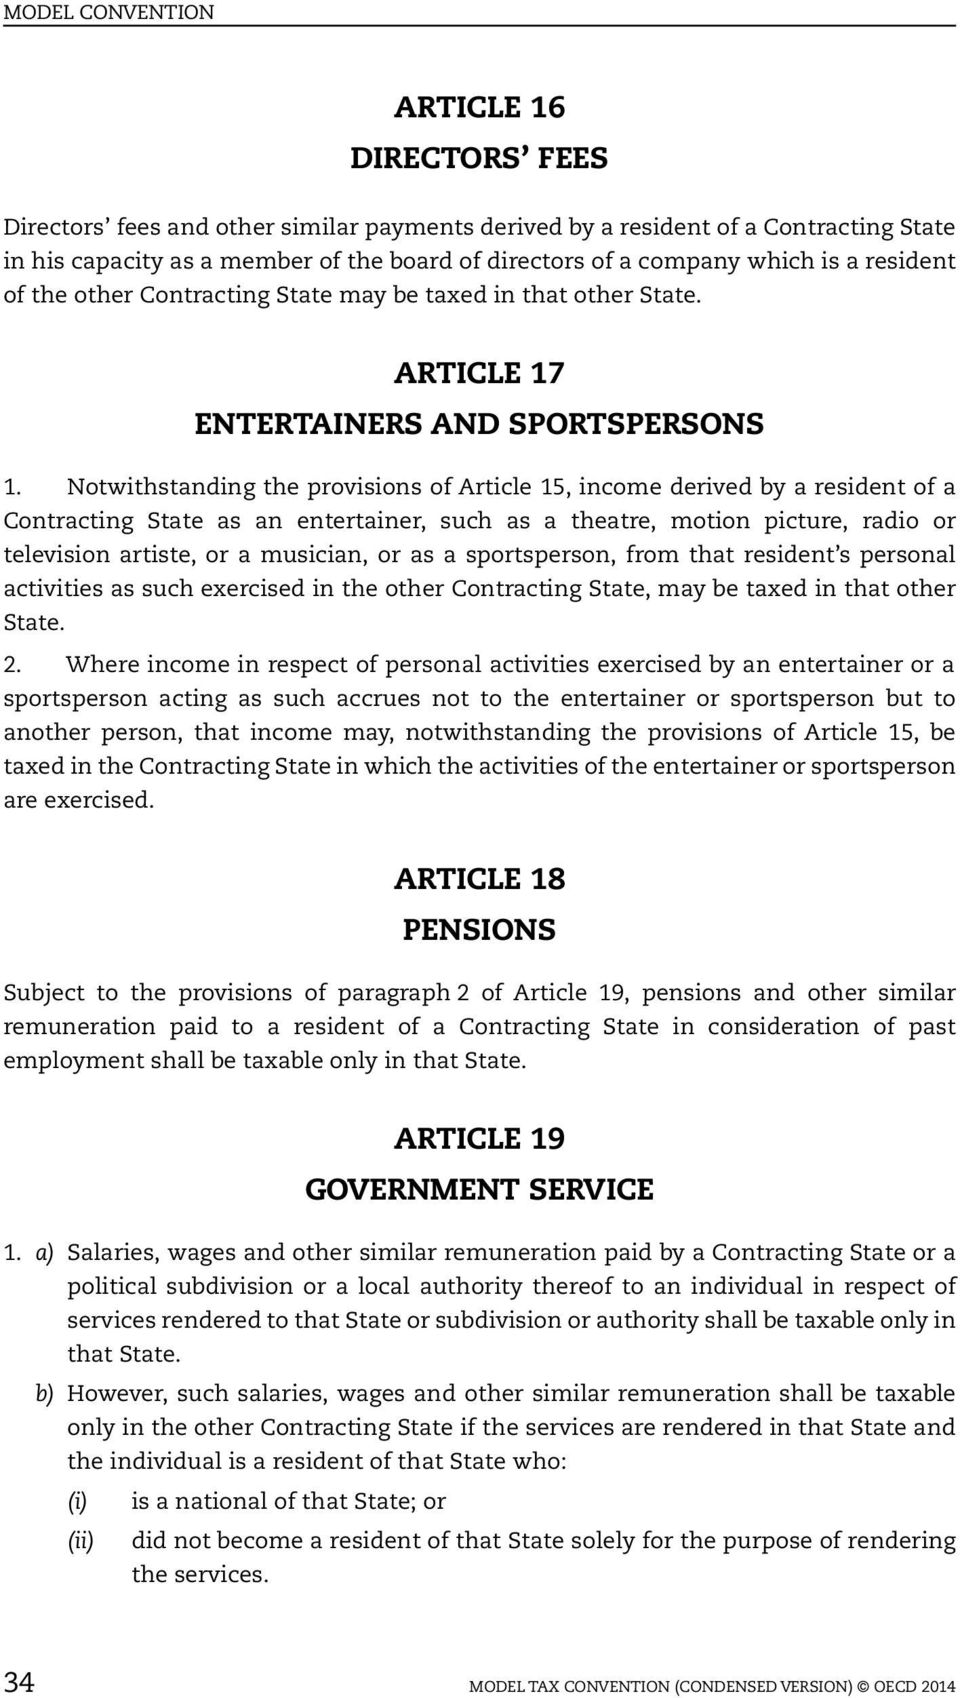 Notwithstanding the provisions of Article 15, income derived by a resident of a Contracting State as an entertainer, such as a theatre, motion picture, radio or television artiste, or a musician, or